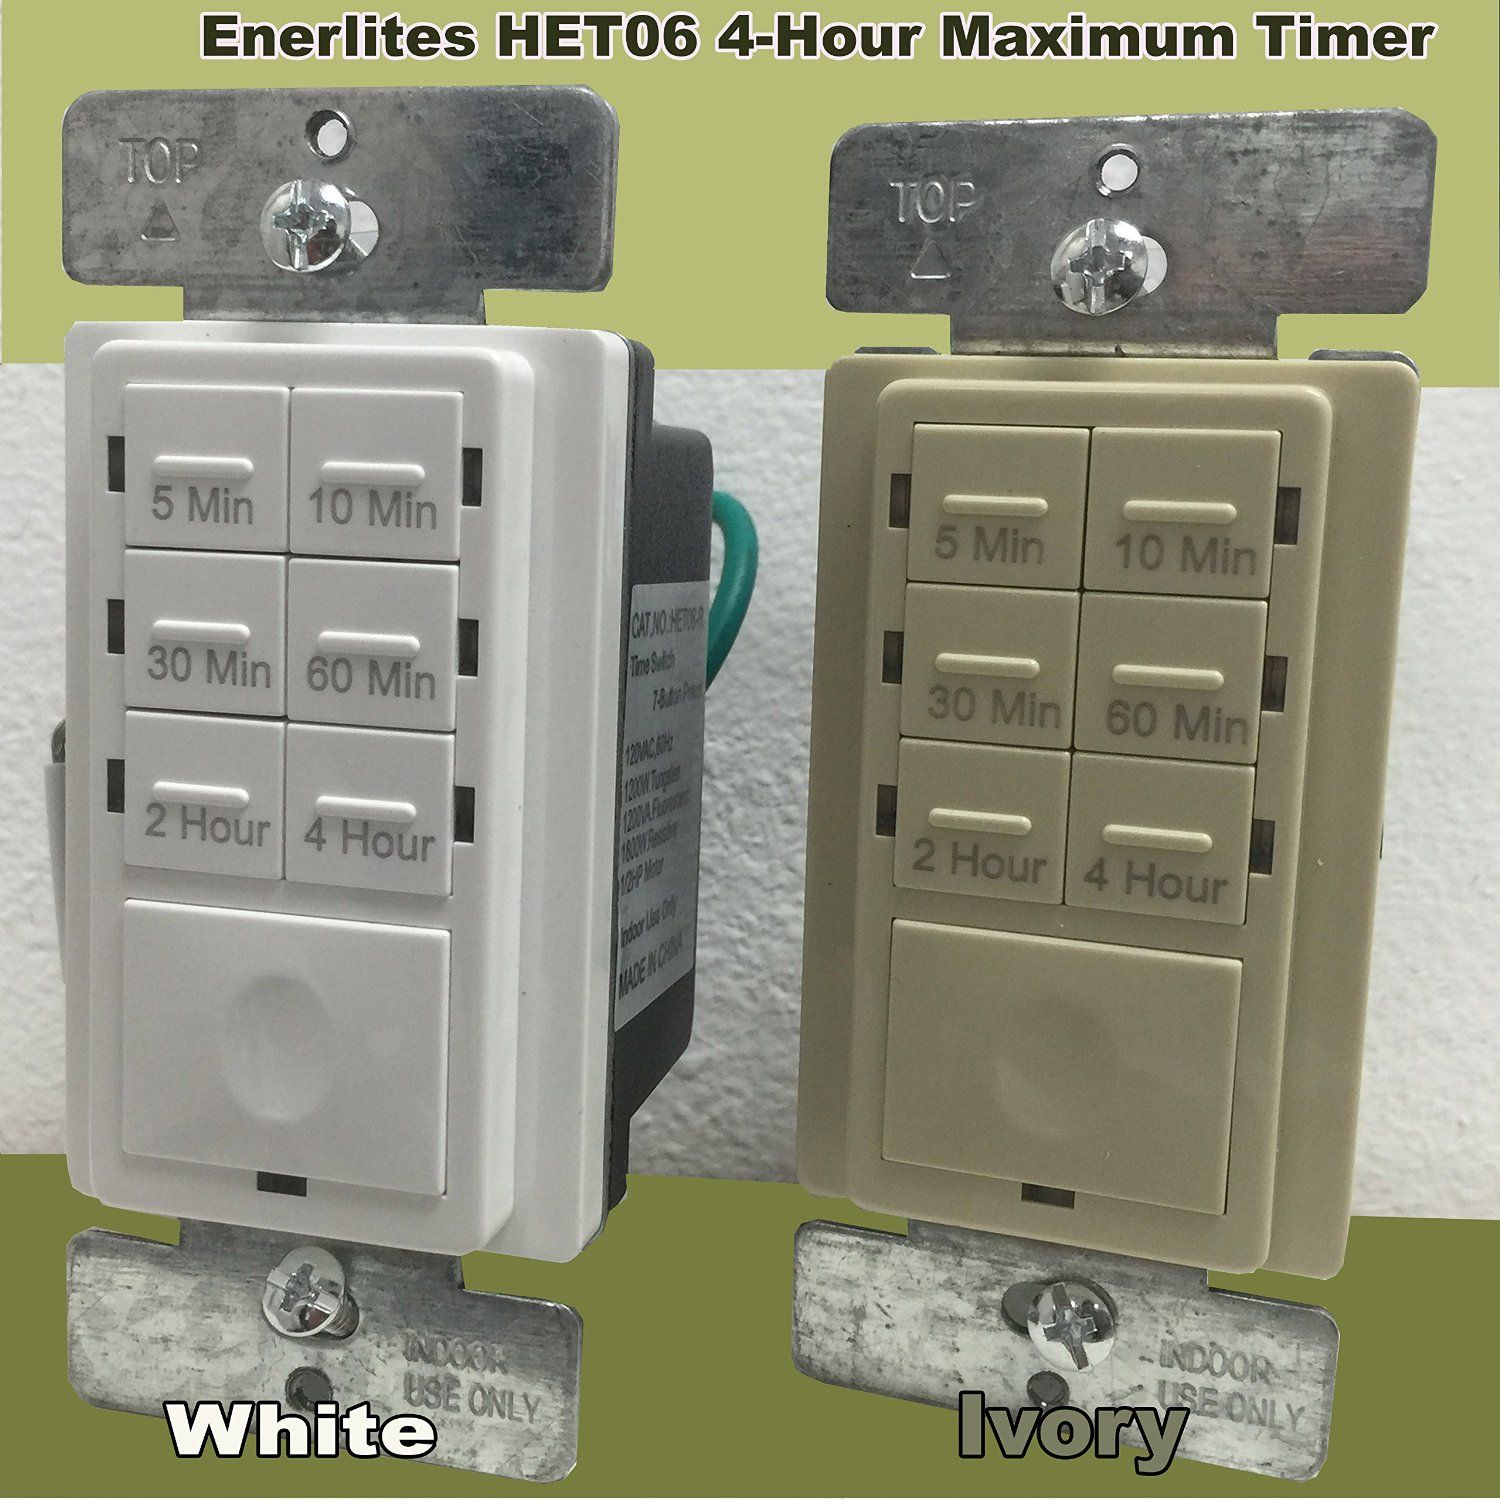 Enerlites Het06 Countdown Timer Switch For Light Fan And Motor 5 10 30 60 Mins 2 4 Hours 7 Button White Countdown Timer Plates On Wall Locker Storage